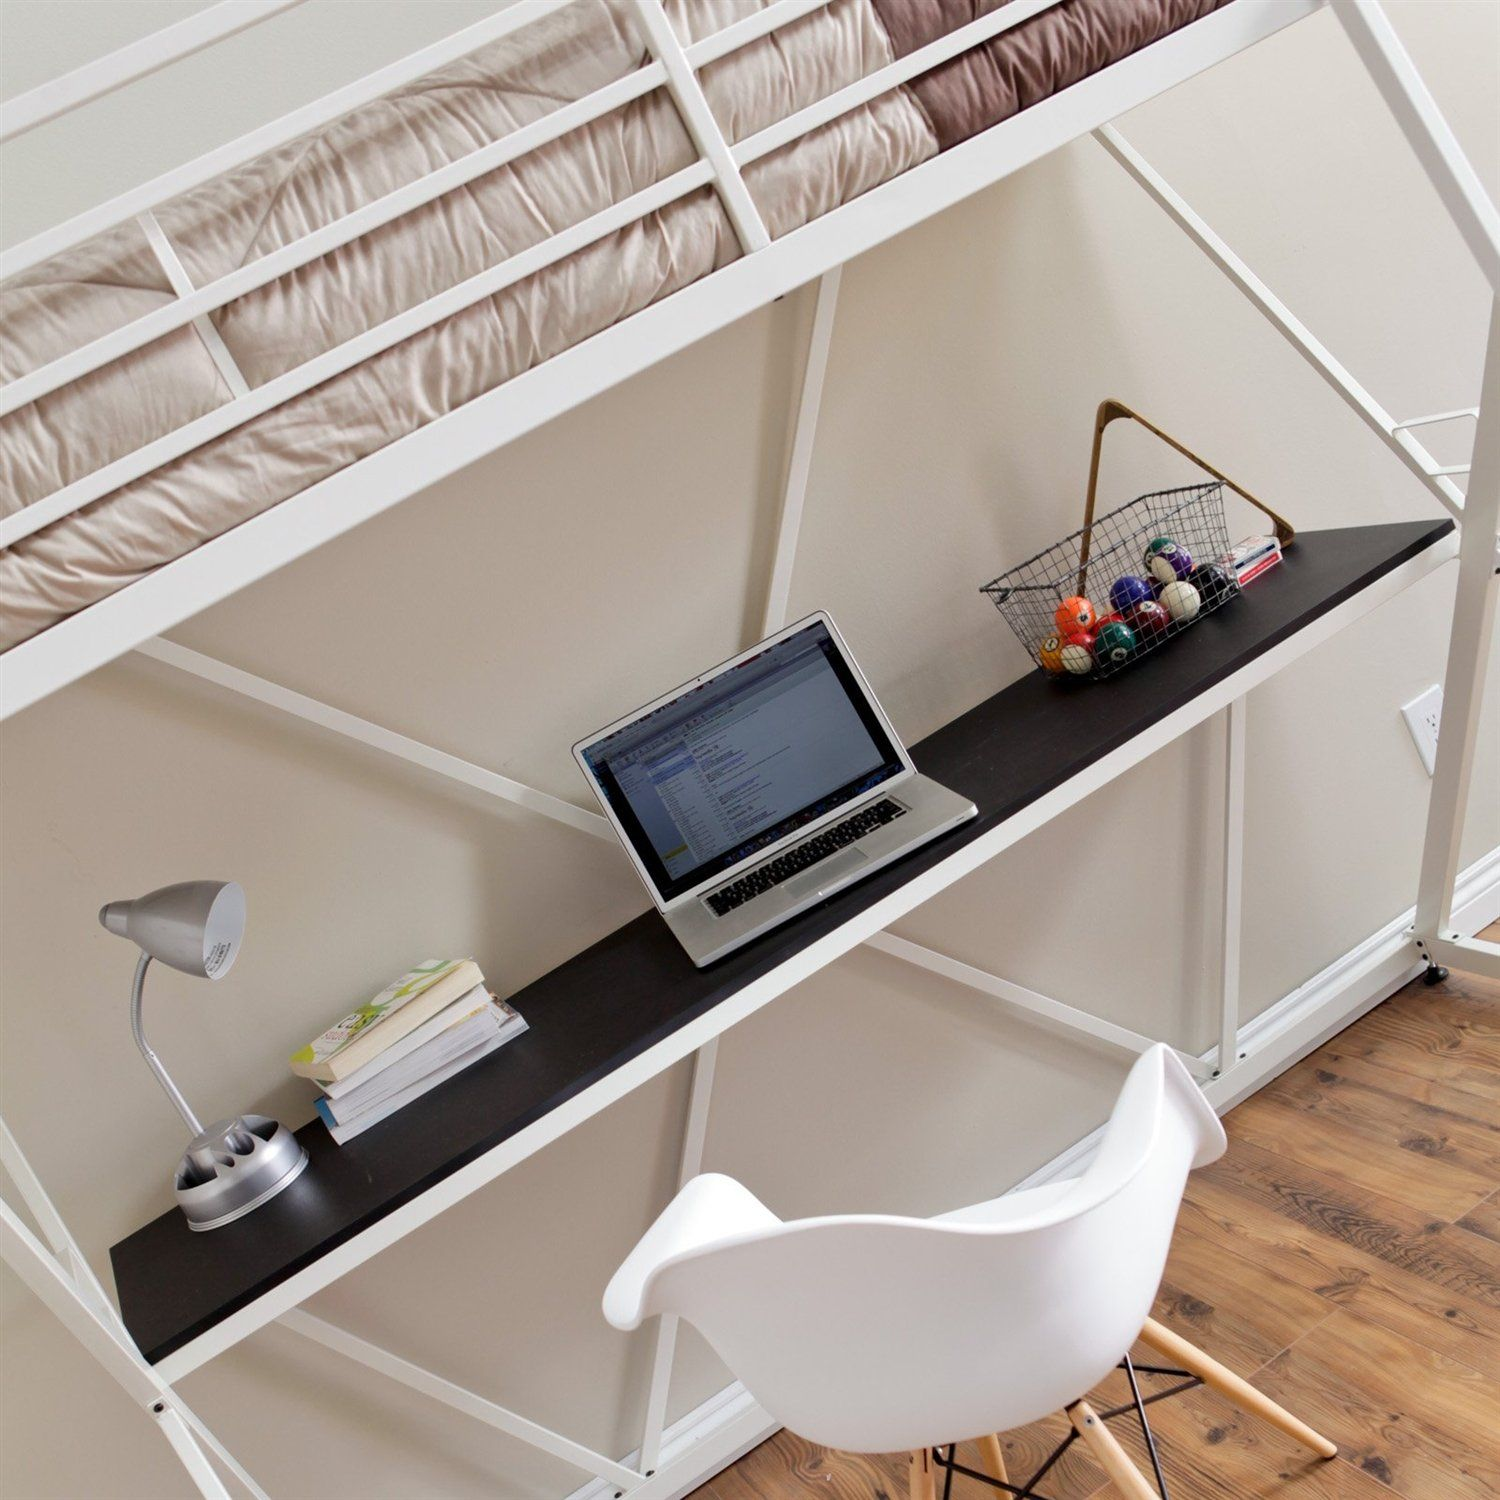 This Modern Twin size Bunk Bed Loft with Desk in White